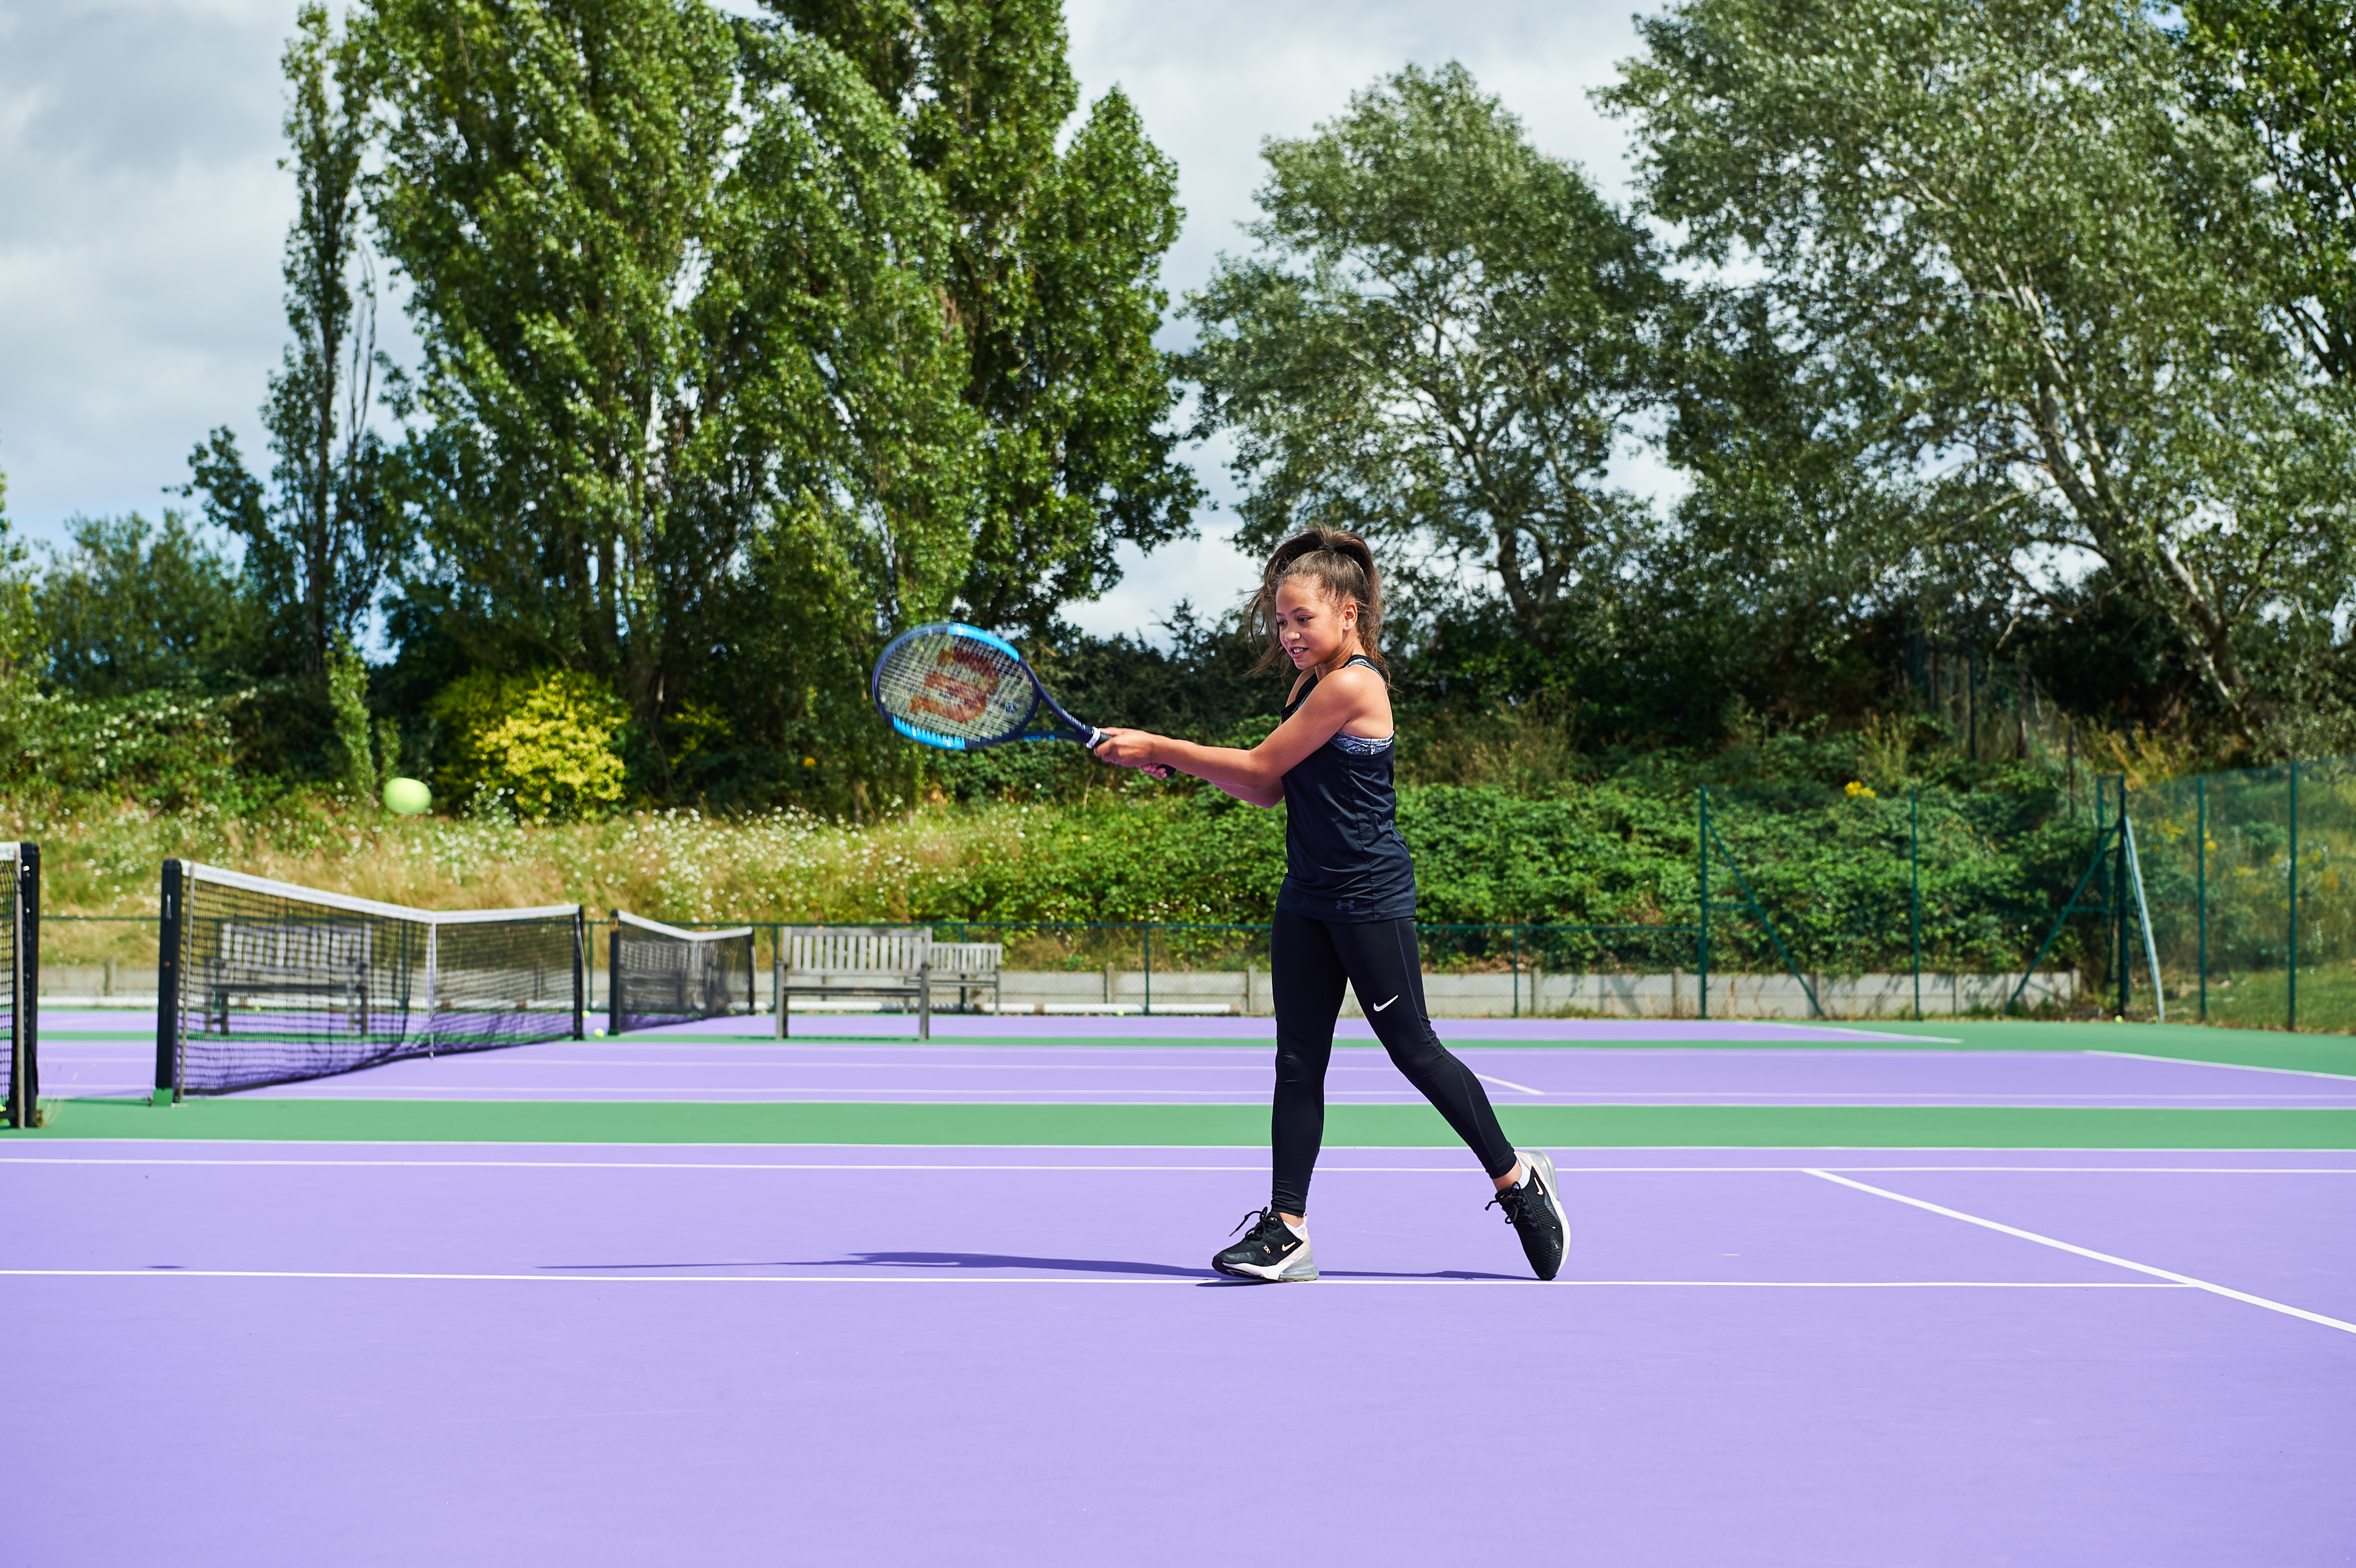 Girl on a tennis court